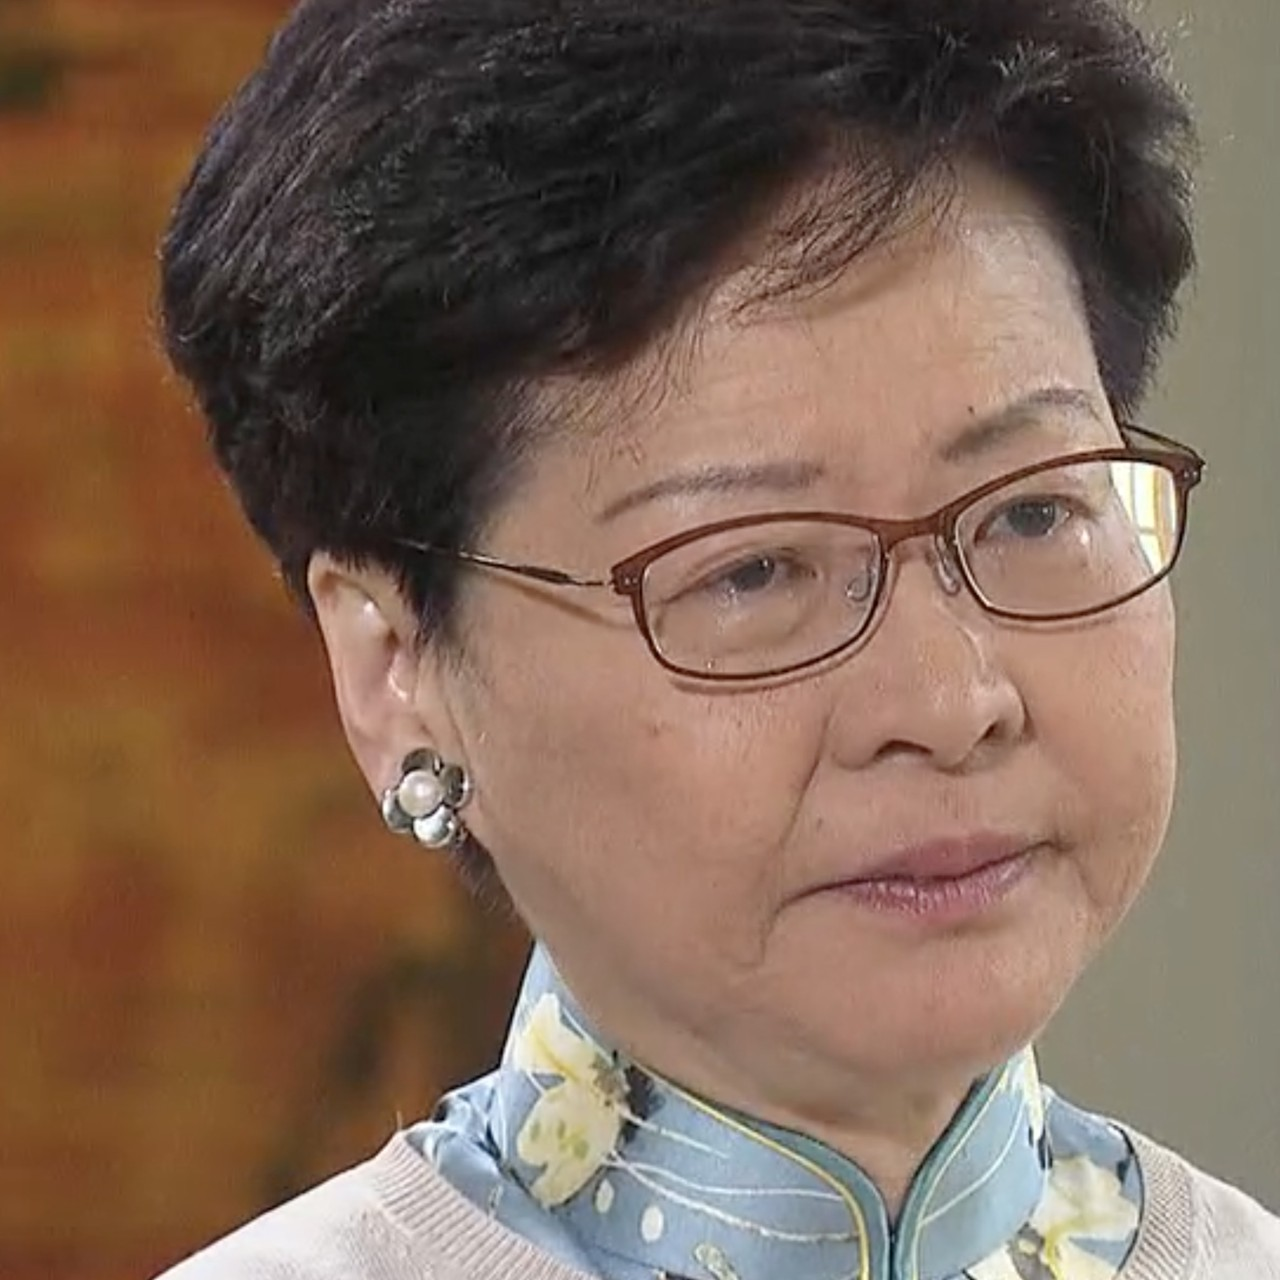 Hong Kong Chief Executive Carrie Lam accuses anti-extradition bill